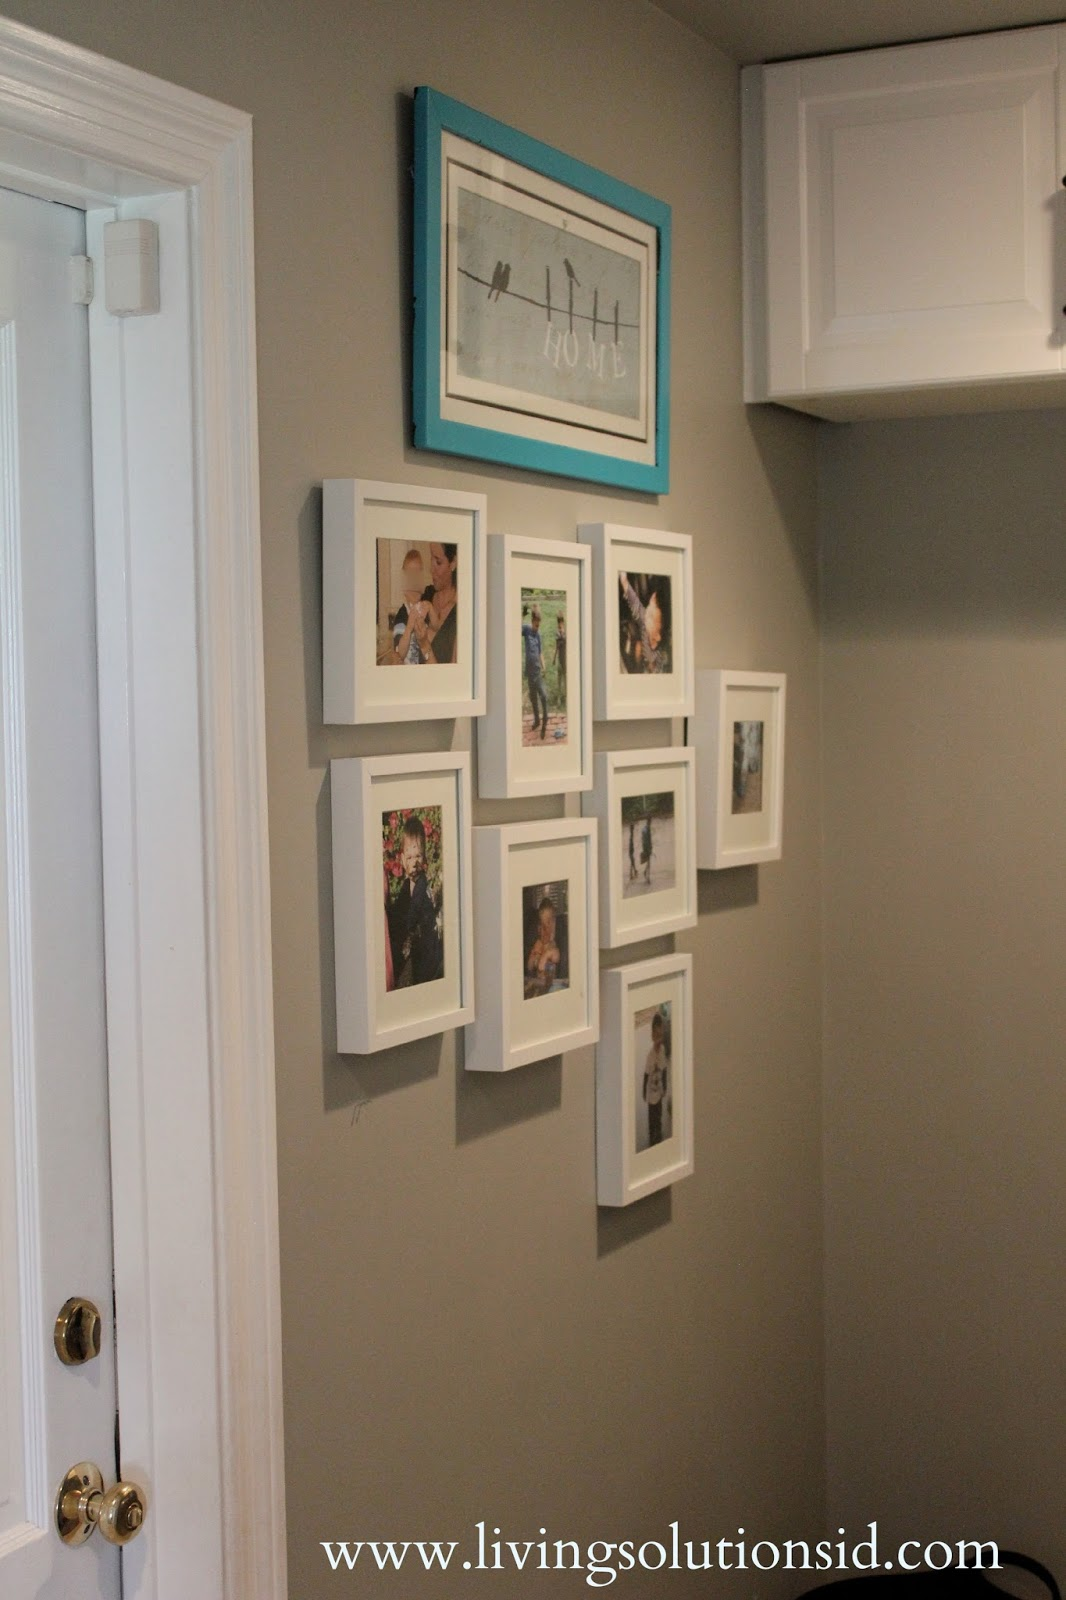 Laundry Room Picture Frames Laundry Room Picture Frames  Wall Plate Design Ideas